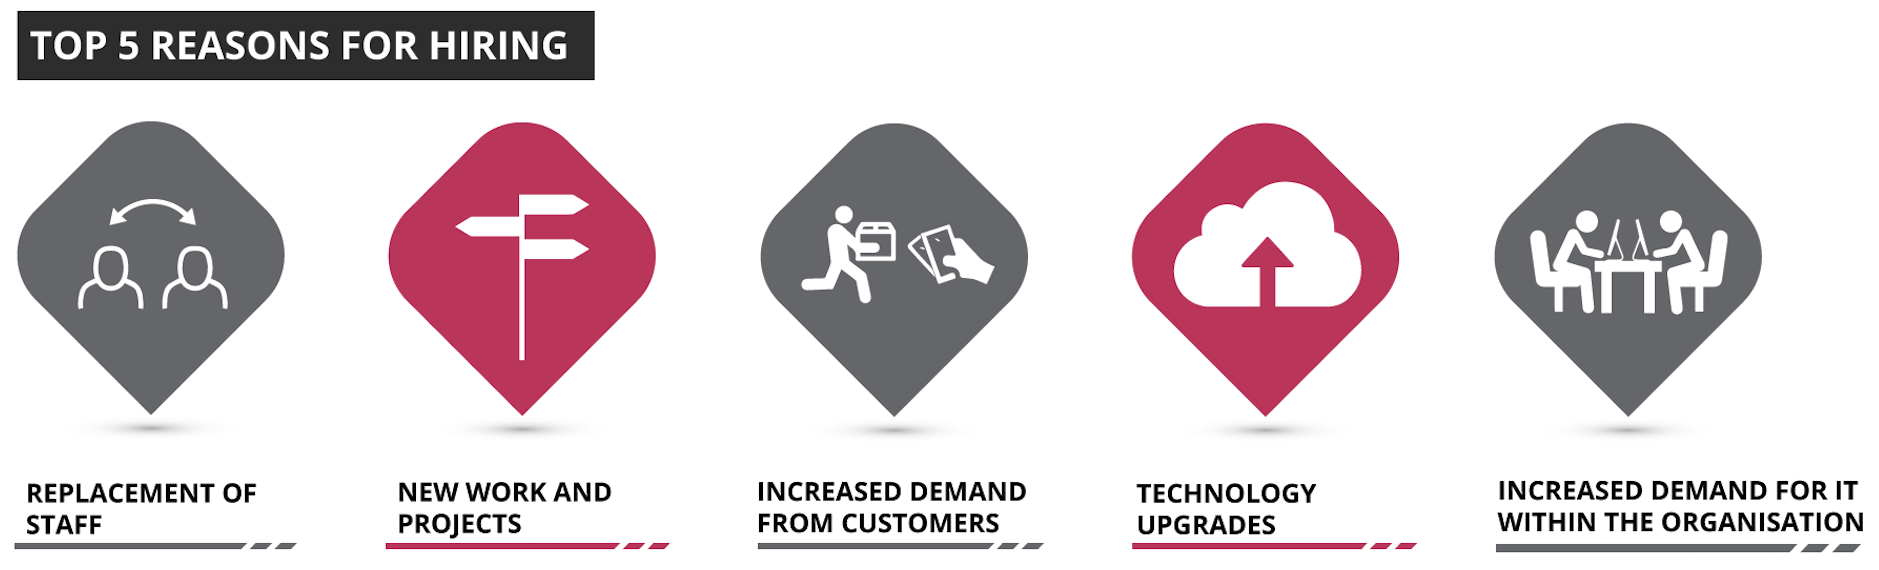 Top 5 reasons for hiring in the Christchurch IT sector - Sourced Report